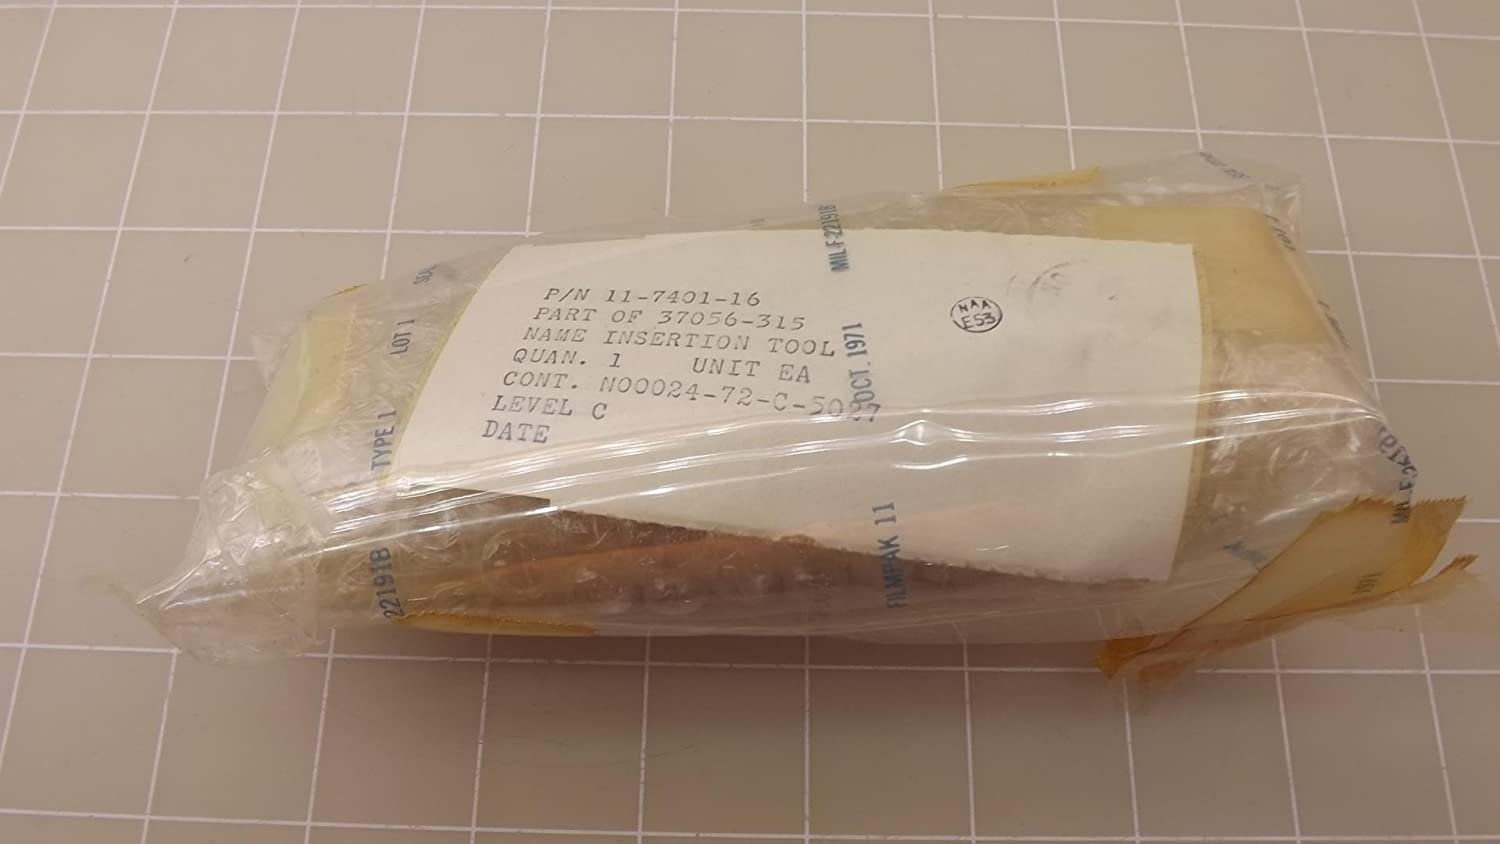 Amphenol 11-7401-16 Insertion and Removal Tool T24922